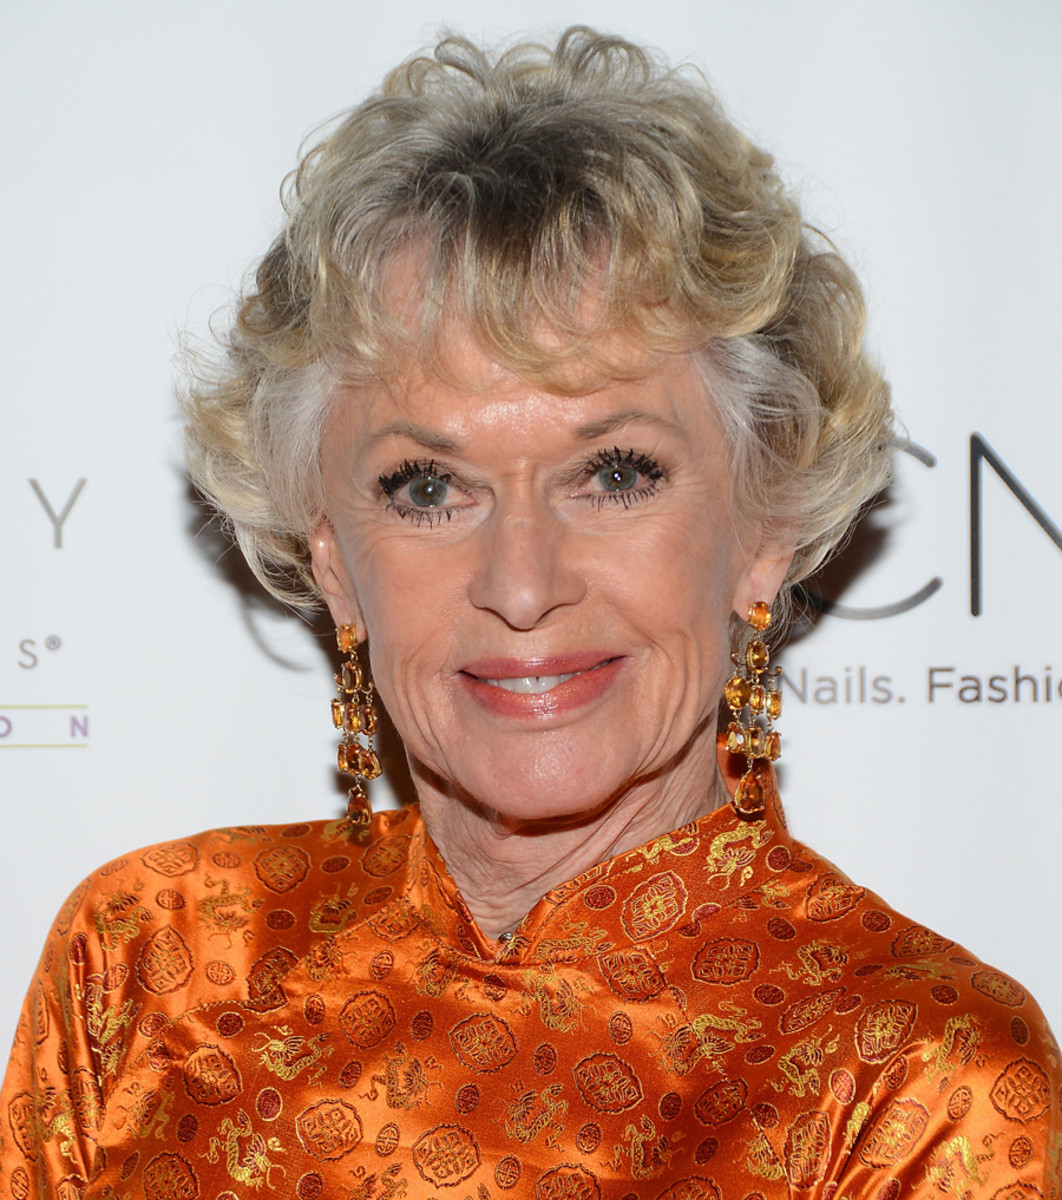 CND And Beauty Changes Lives Honor American Actress & Philanthropist Tippi Hedren With The Legacy Of Style Award